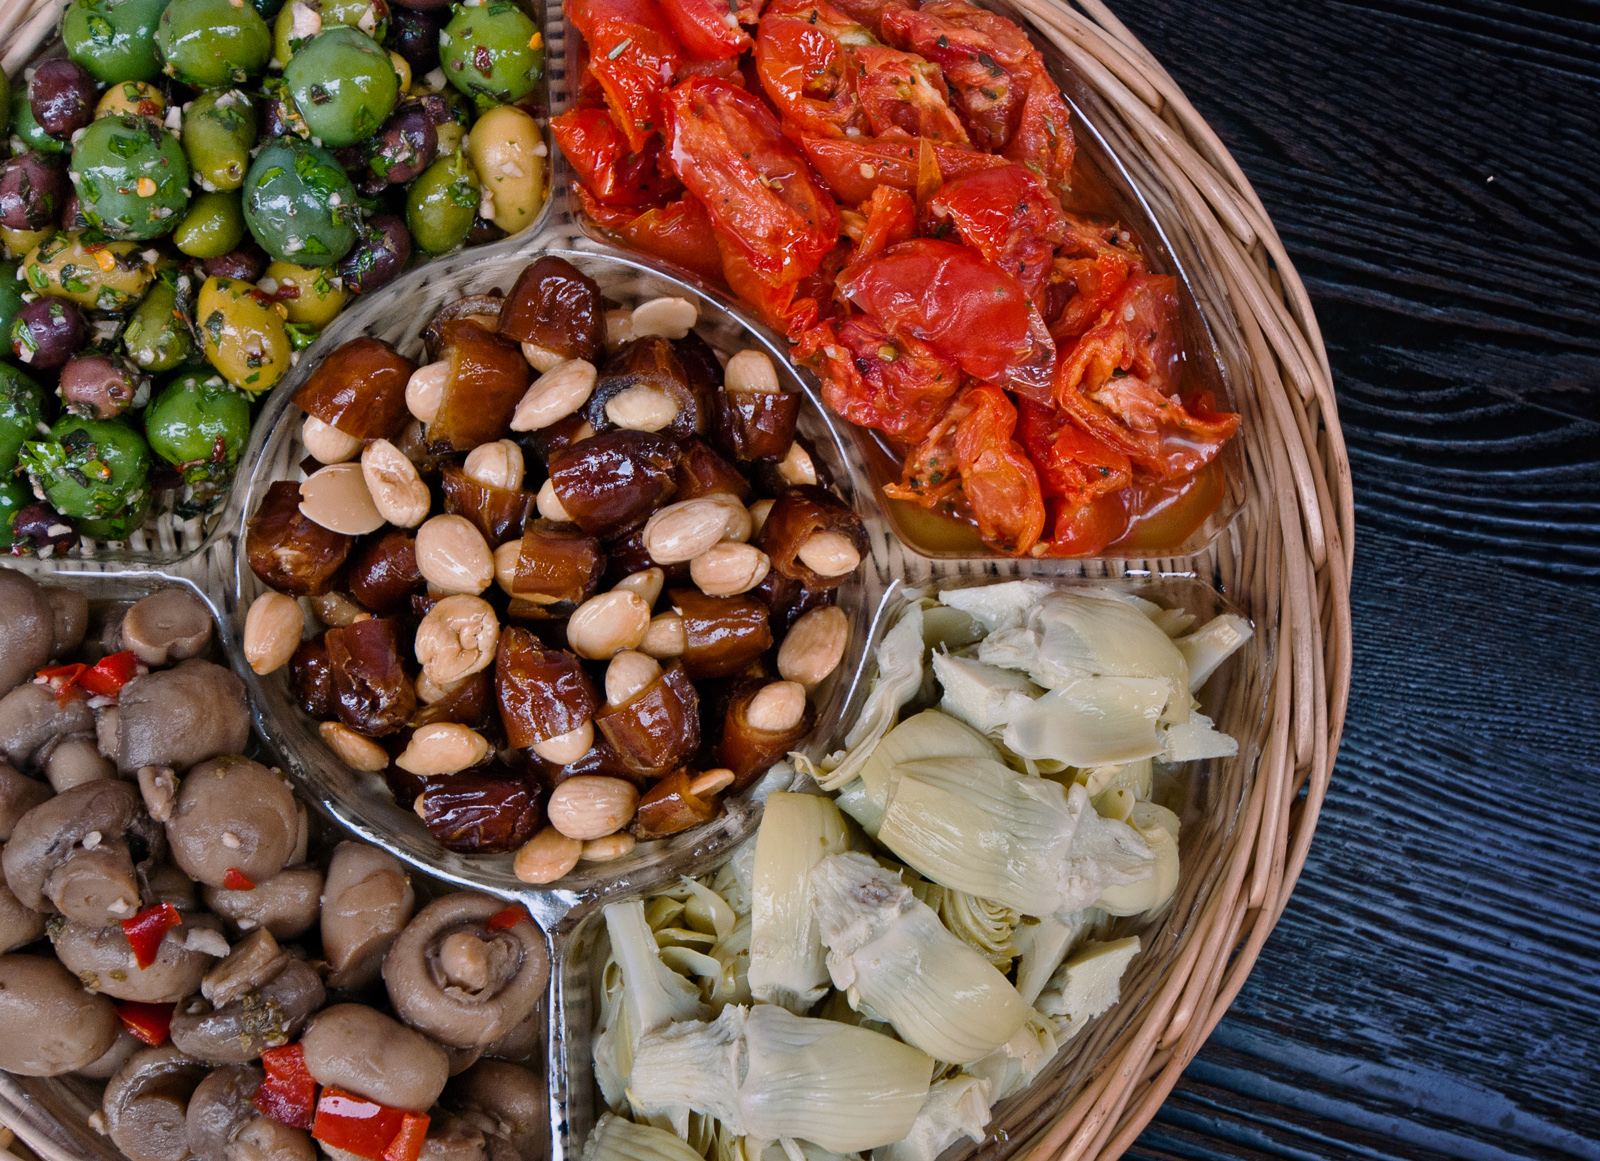 antipasti platter with Marcona almonds and dates in center